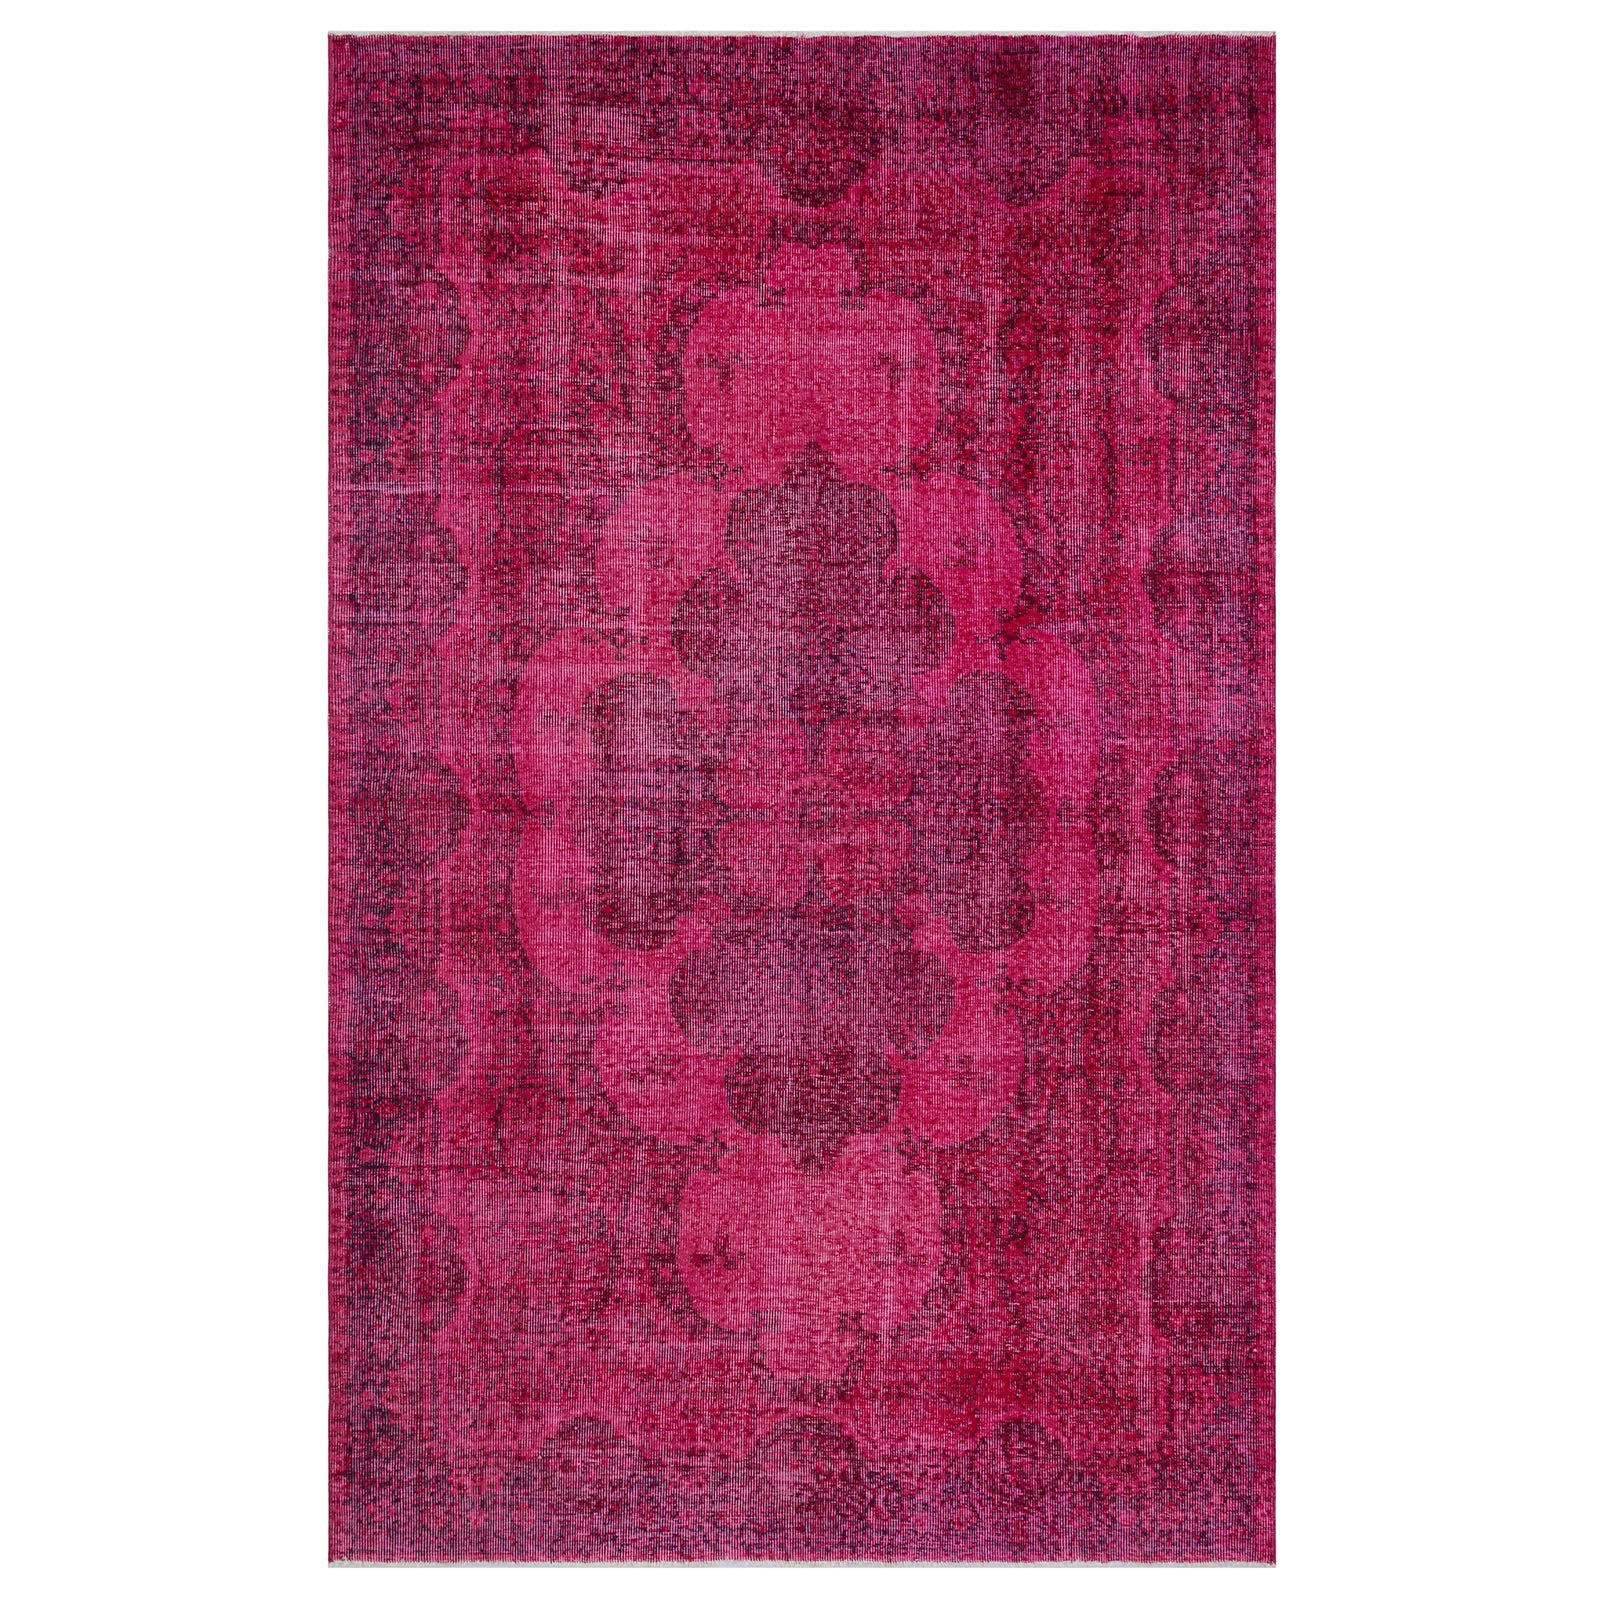 Hali 179X285  CM Bursa Handmade over dyed rug  1858 -  179*285 سجاده بورصة صناعة يدوية على بساط مصبوغ - Shop Online Furniture and Home Decor Store in Dubai, UAE at ebarza